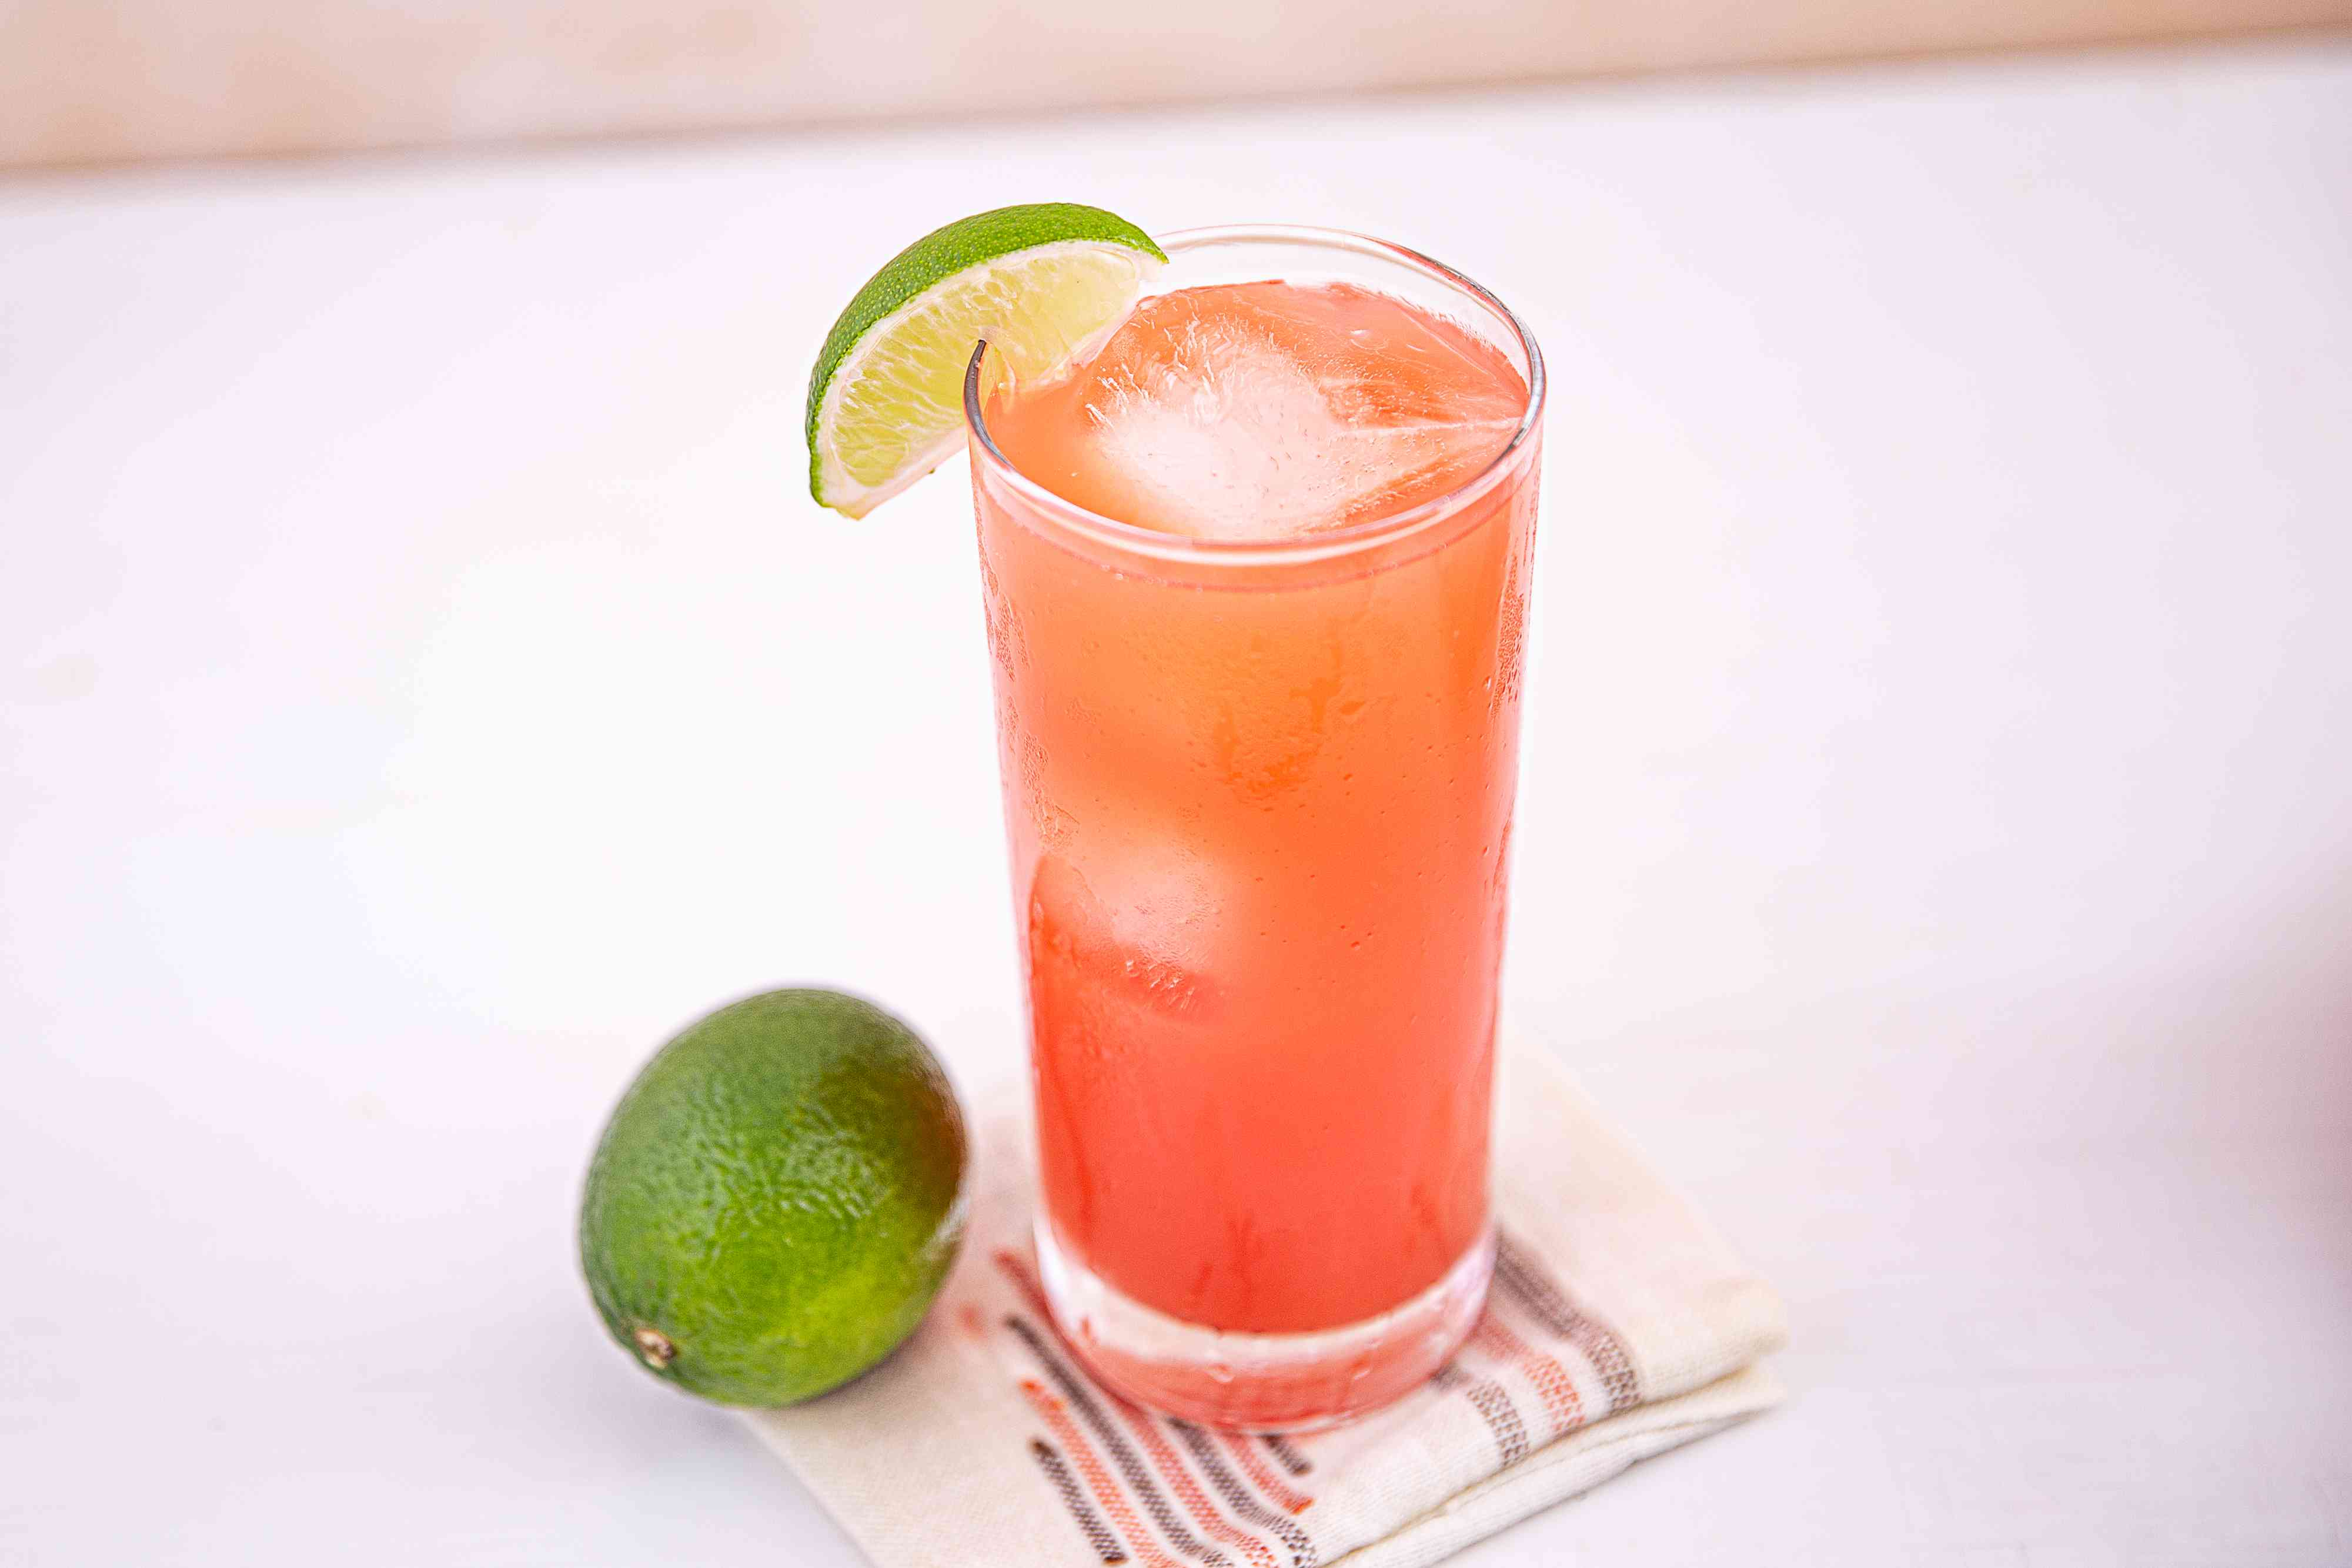 Greyhound cocktail with a lime garnish